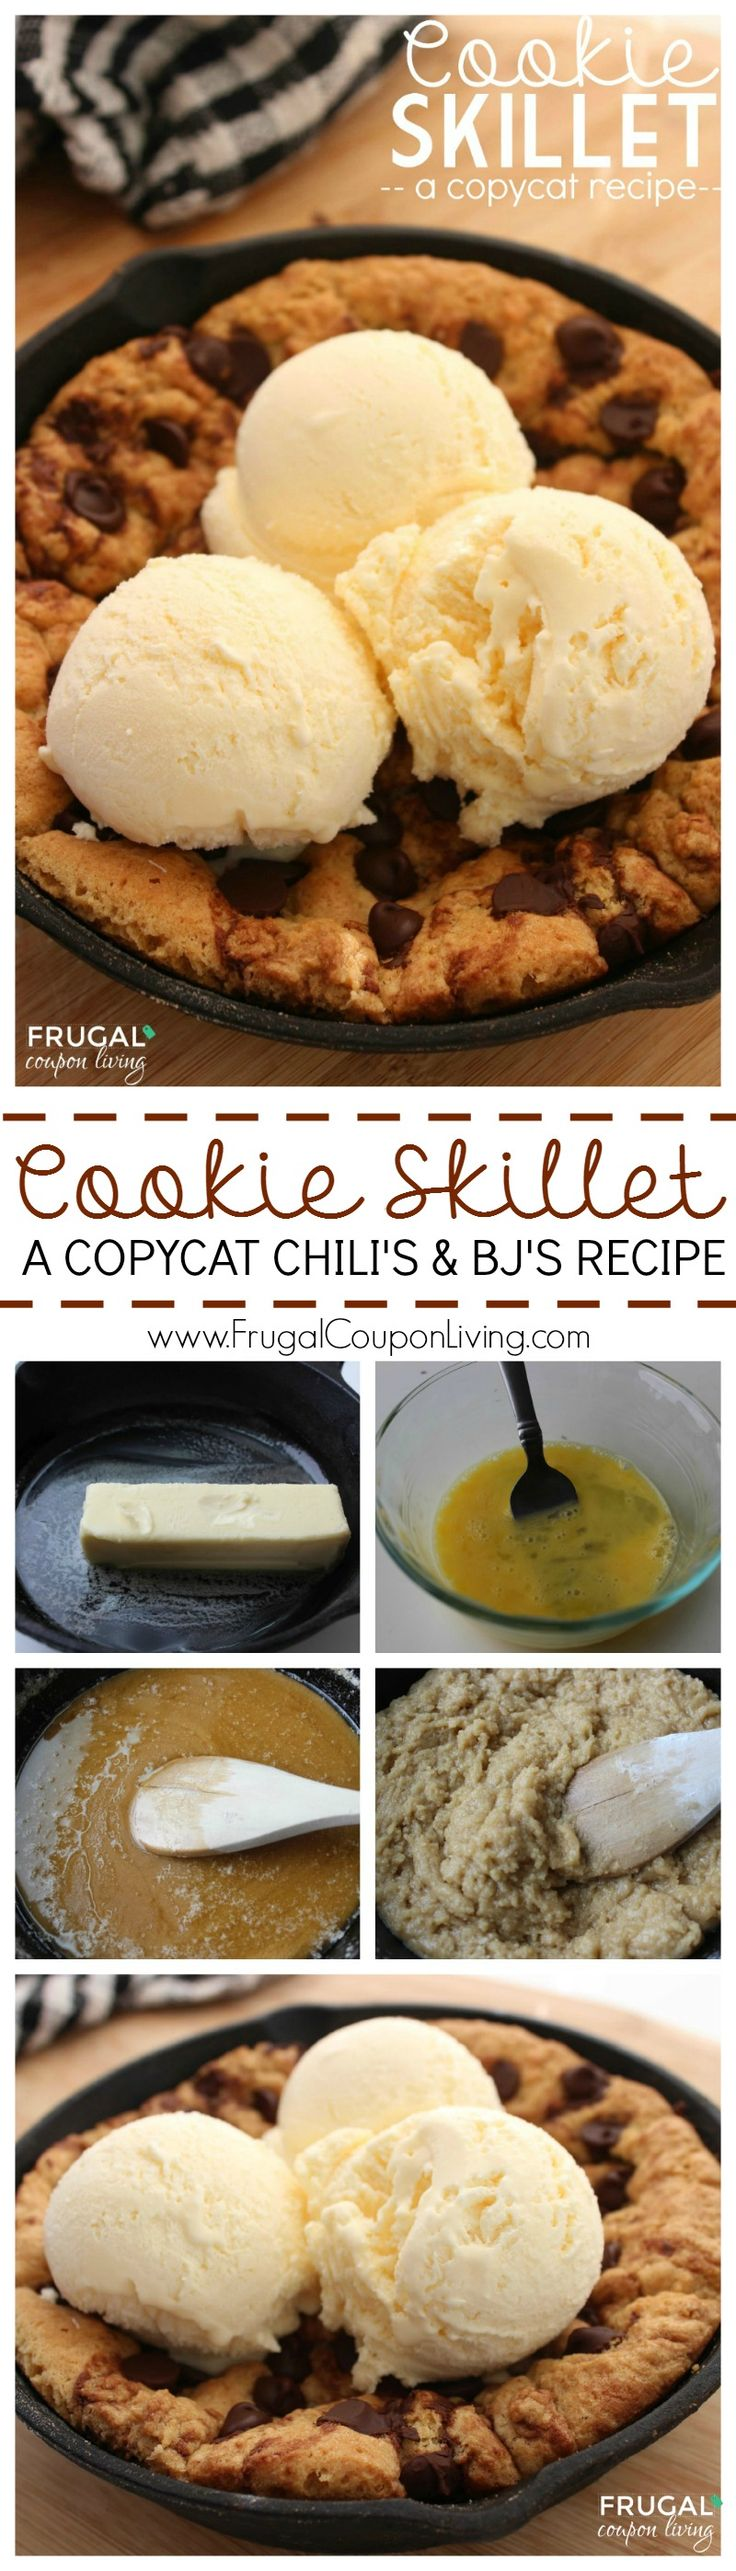 We have loved this homemade cookie skillet so much I had it for my birthday as cake! Just like Chili's and BJ's - copycat cookie recipe on Frugal Coupon Living.